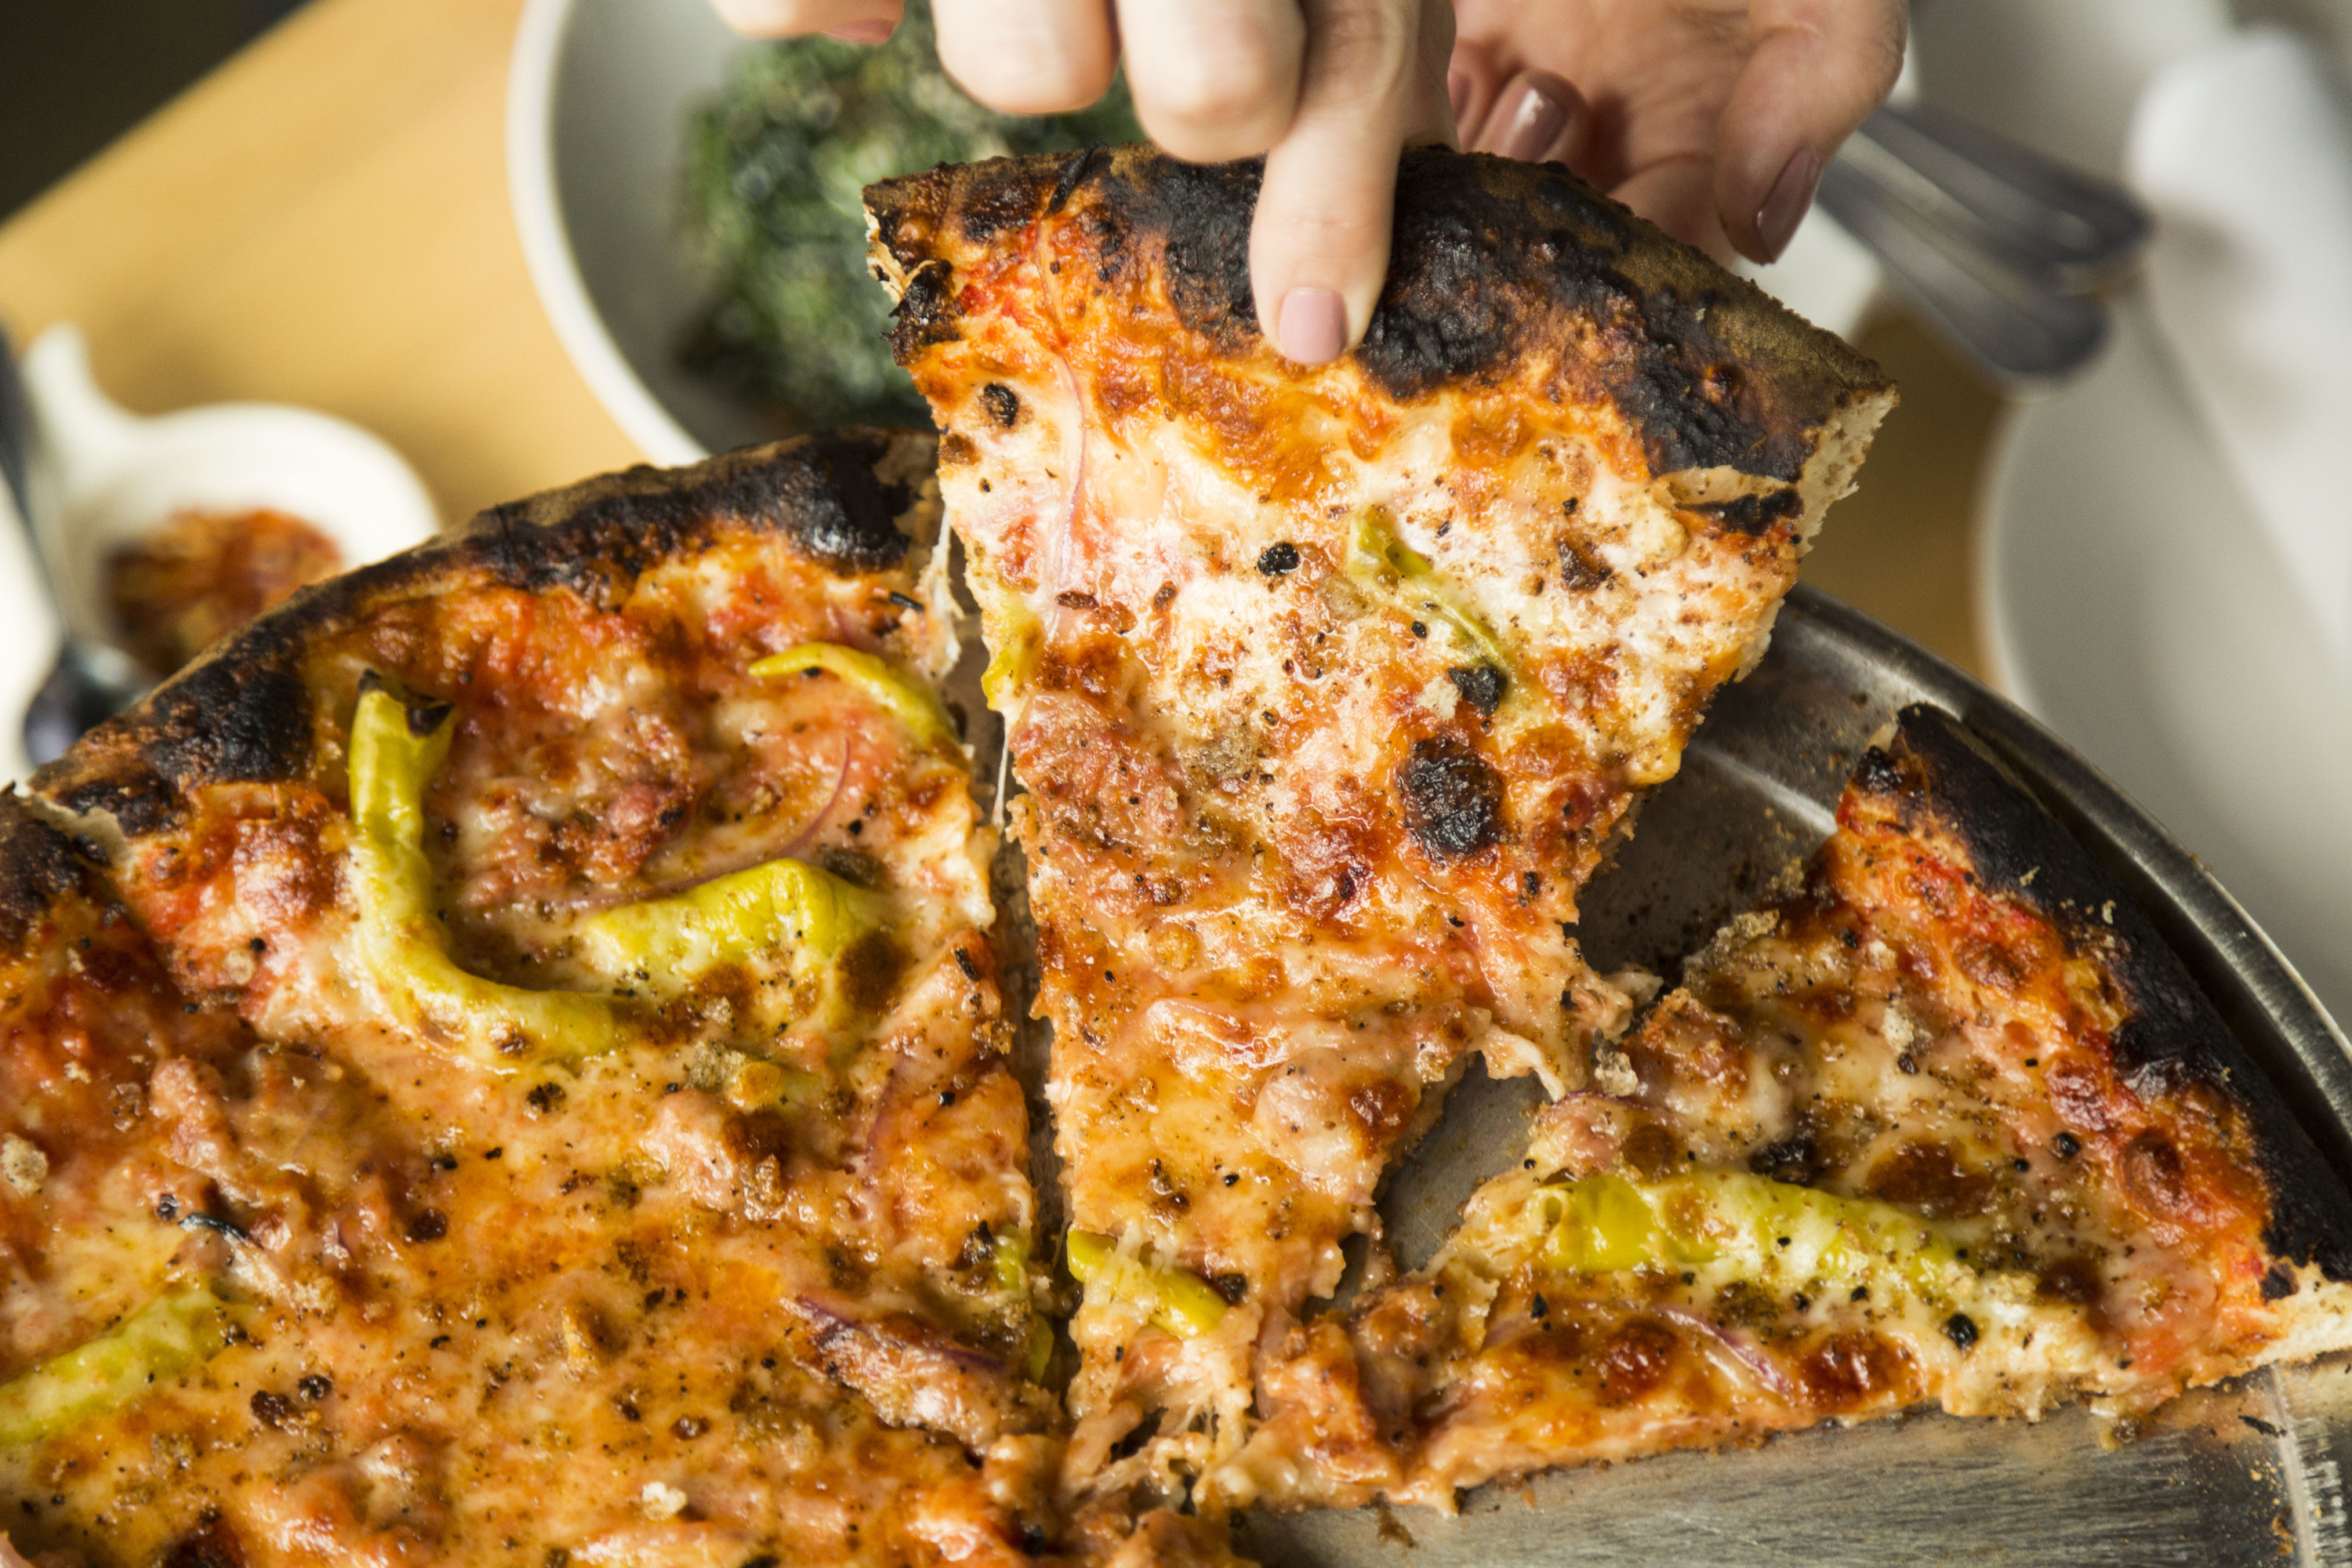 Where to find the best thin crust pizza in Chicago